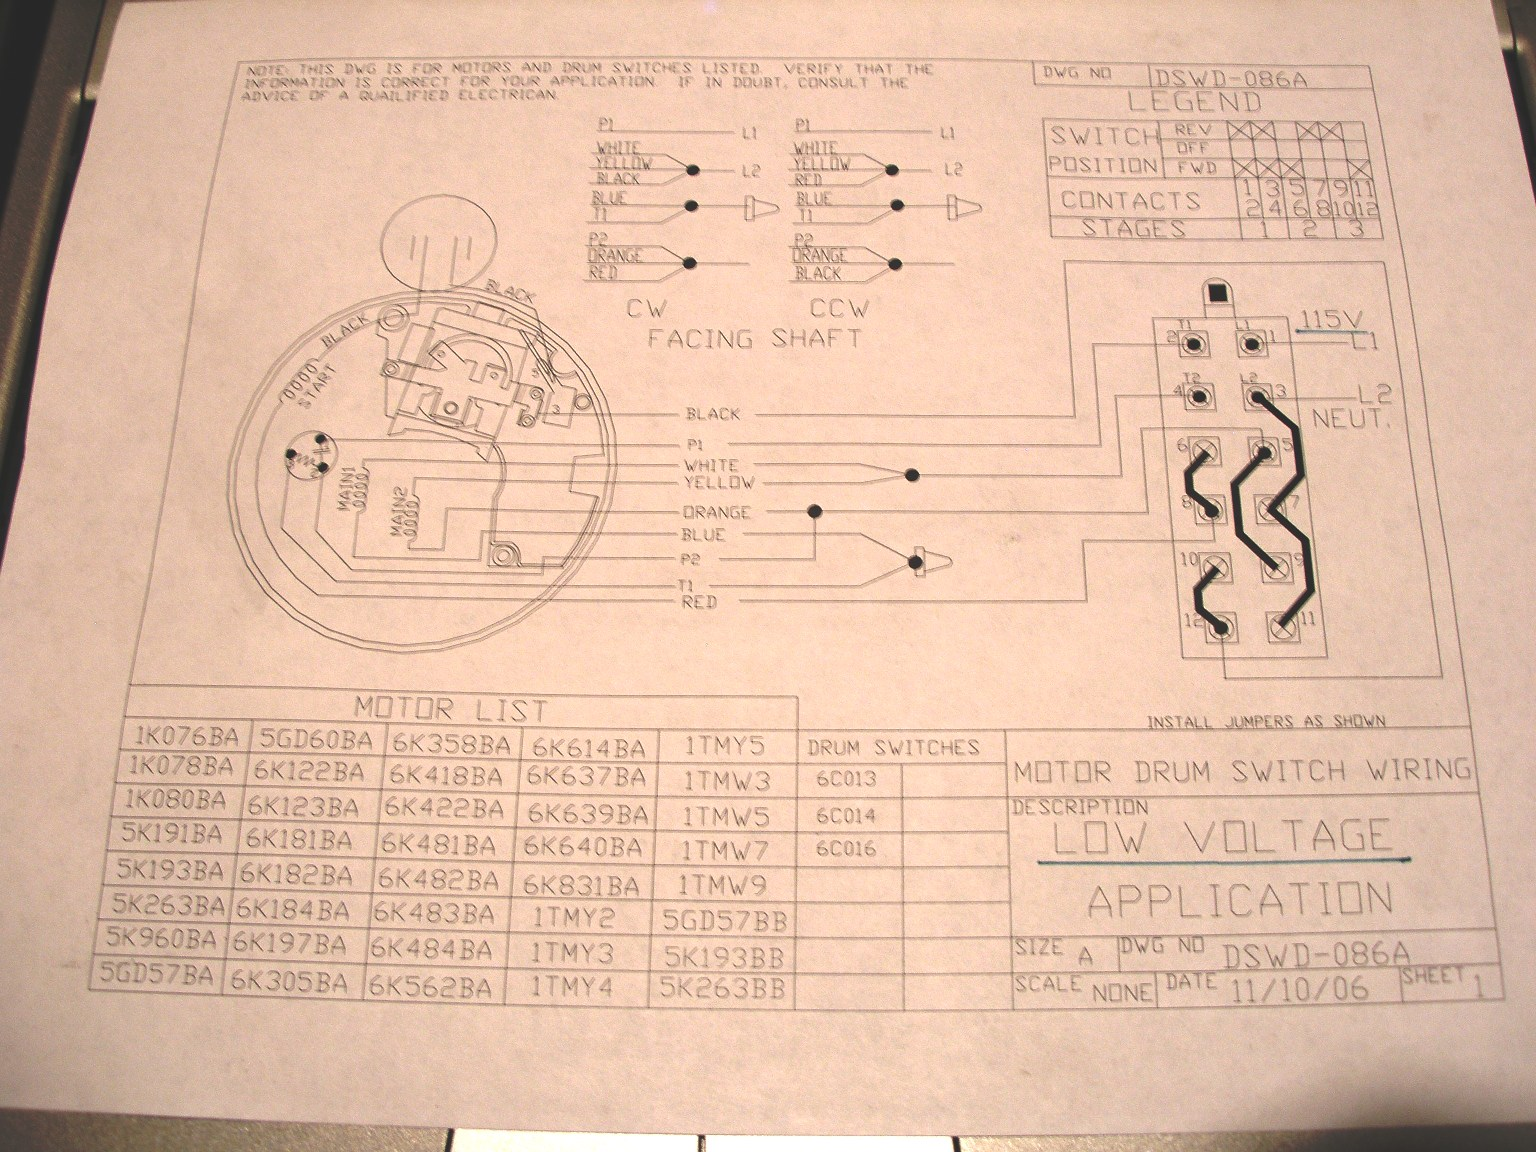 2011 08 11_192911_grainger_dayton_low_voltage_diagram wiring diagram carrier 48tfe007 wiring diagram carrier 48tfe007 Grainger Motor Wiring Diagrams at pacquiaovsvargaslive.co